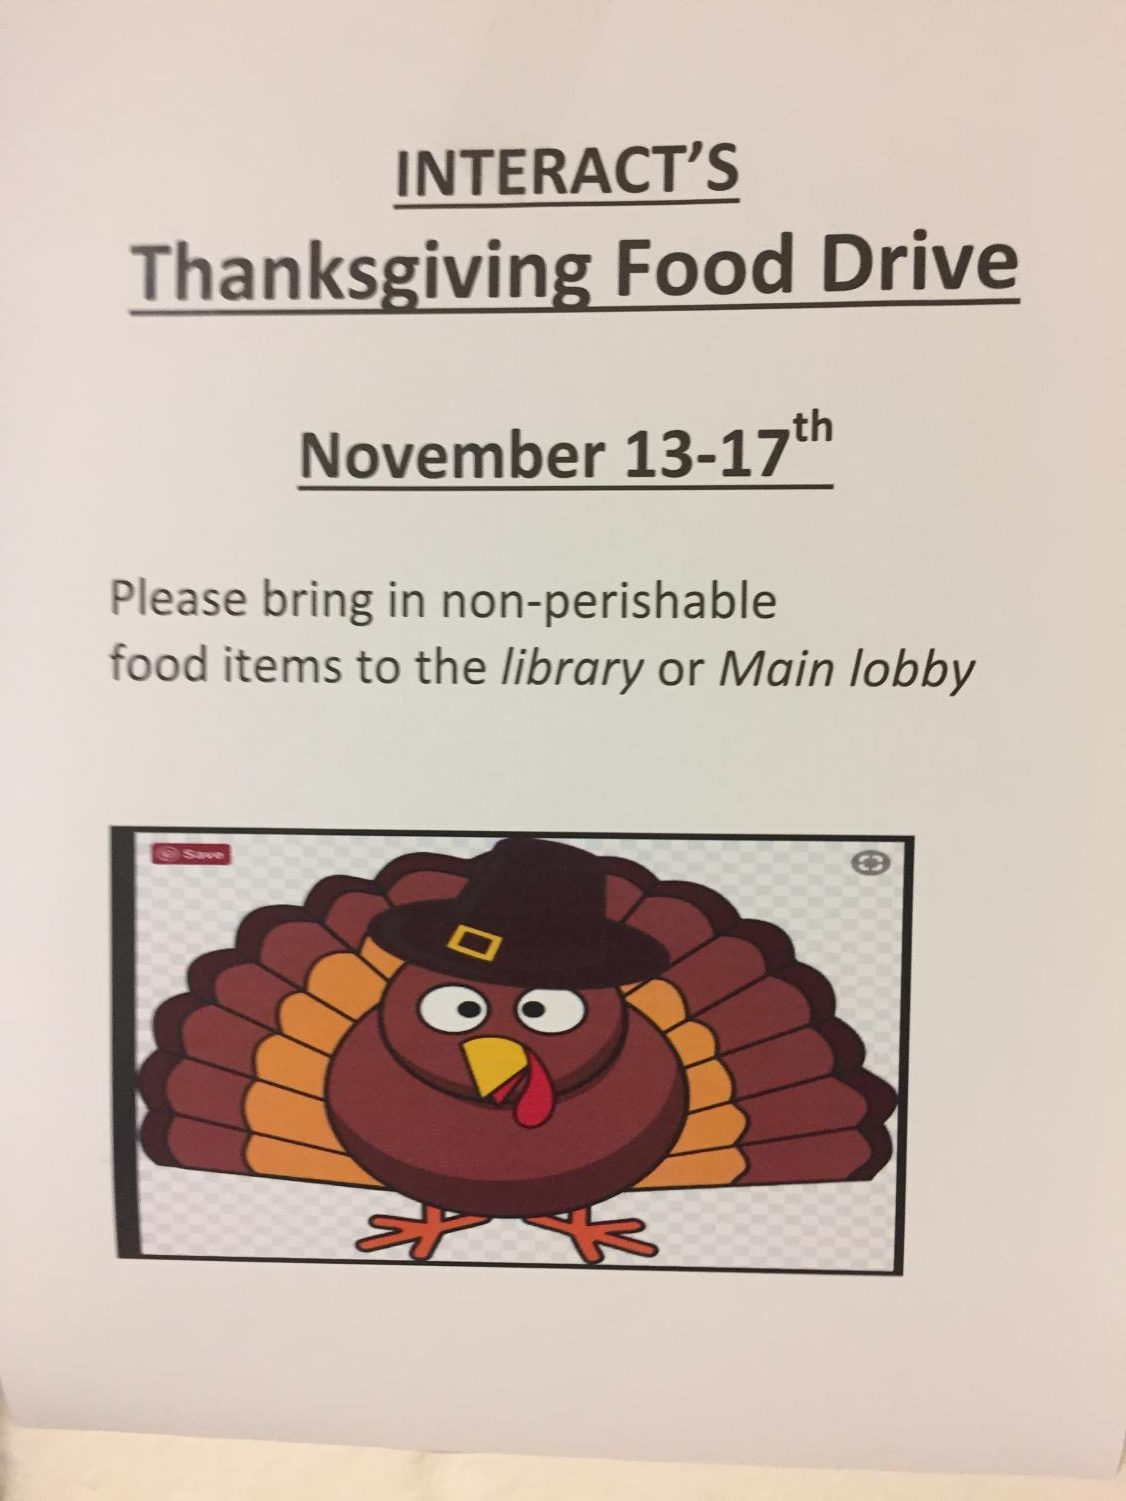 Help out the community and donate to Interact's Thanksgiving Food Drive